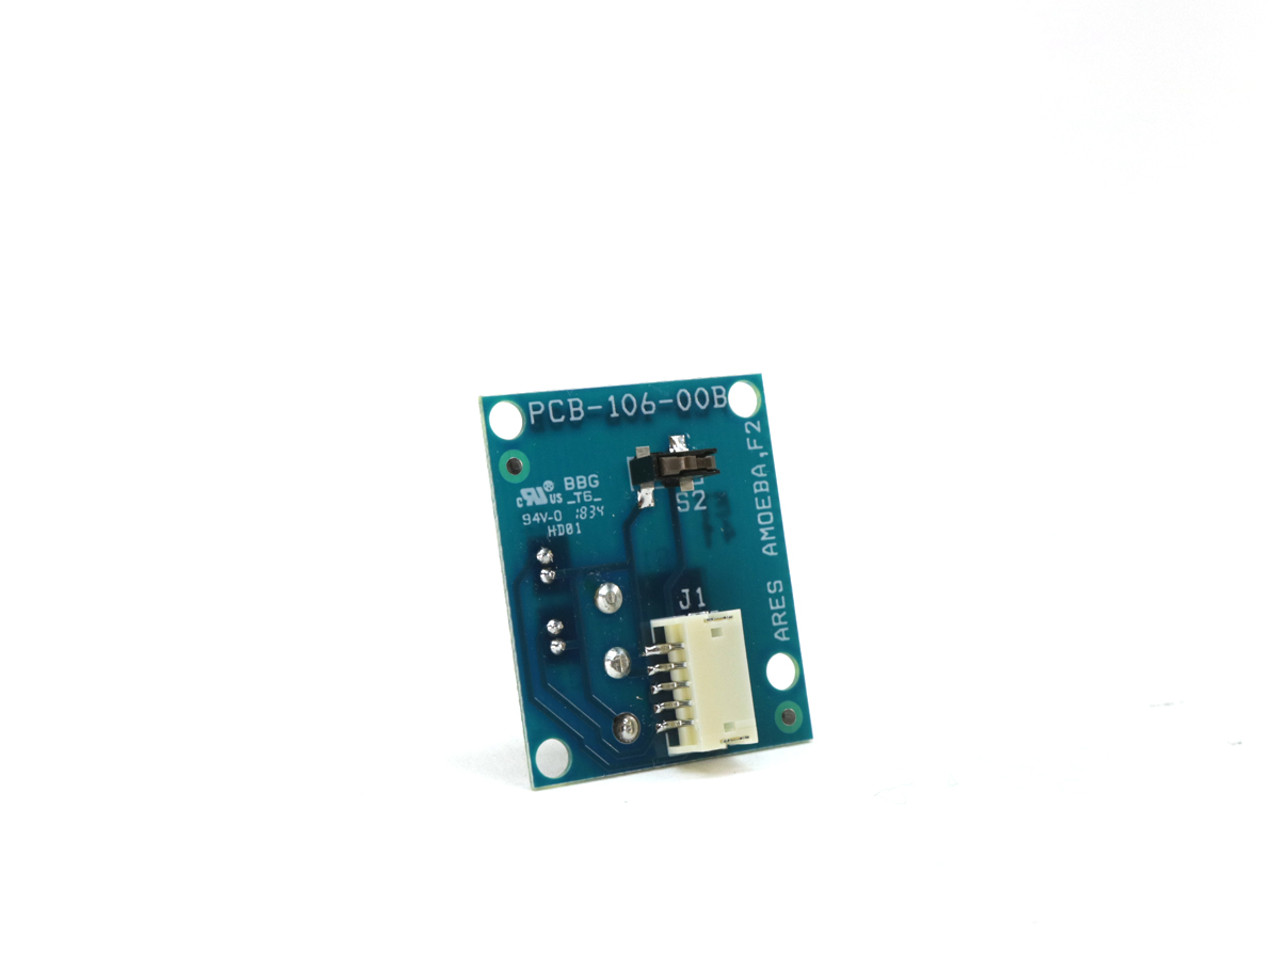 PolarStar | Jack / F1 / F2 Switch Board for ARES AMOEBA | Revision 2